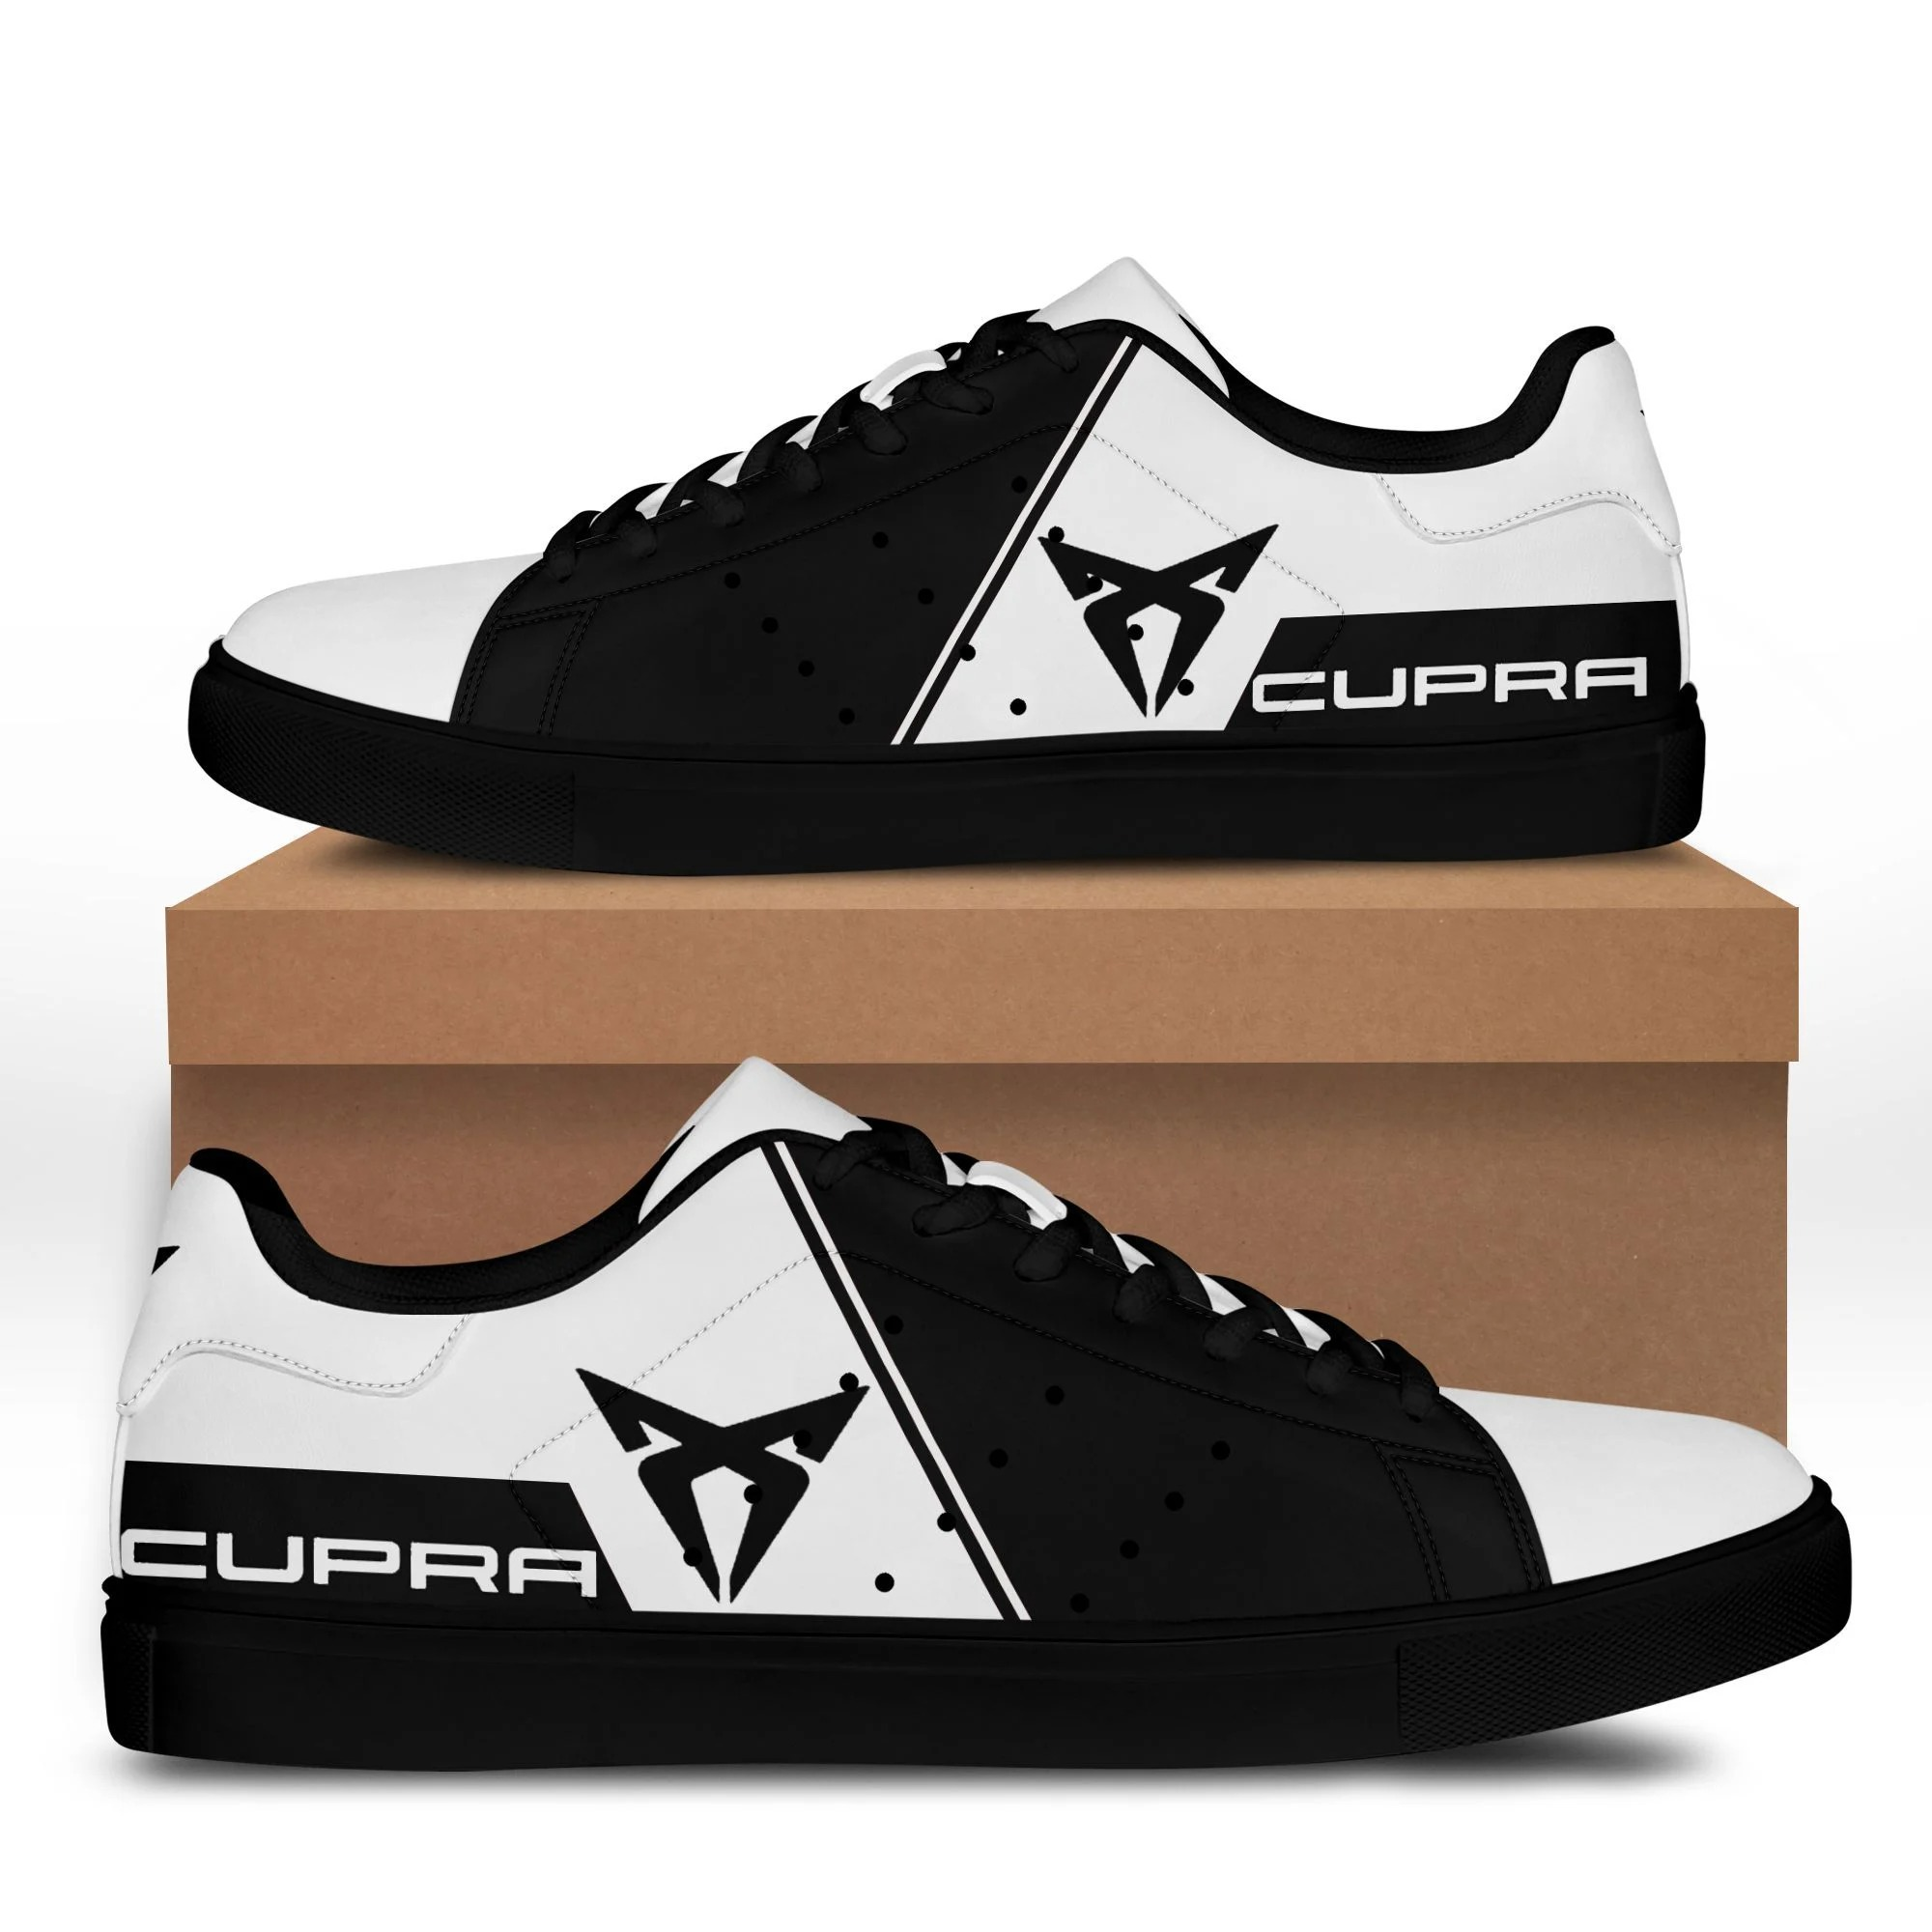 Cupra black and white stan smith low top shoes 3